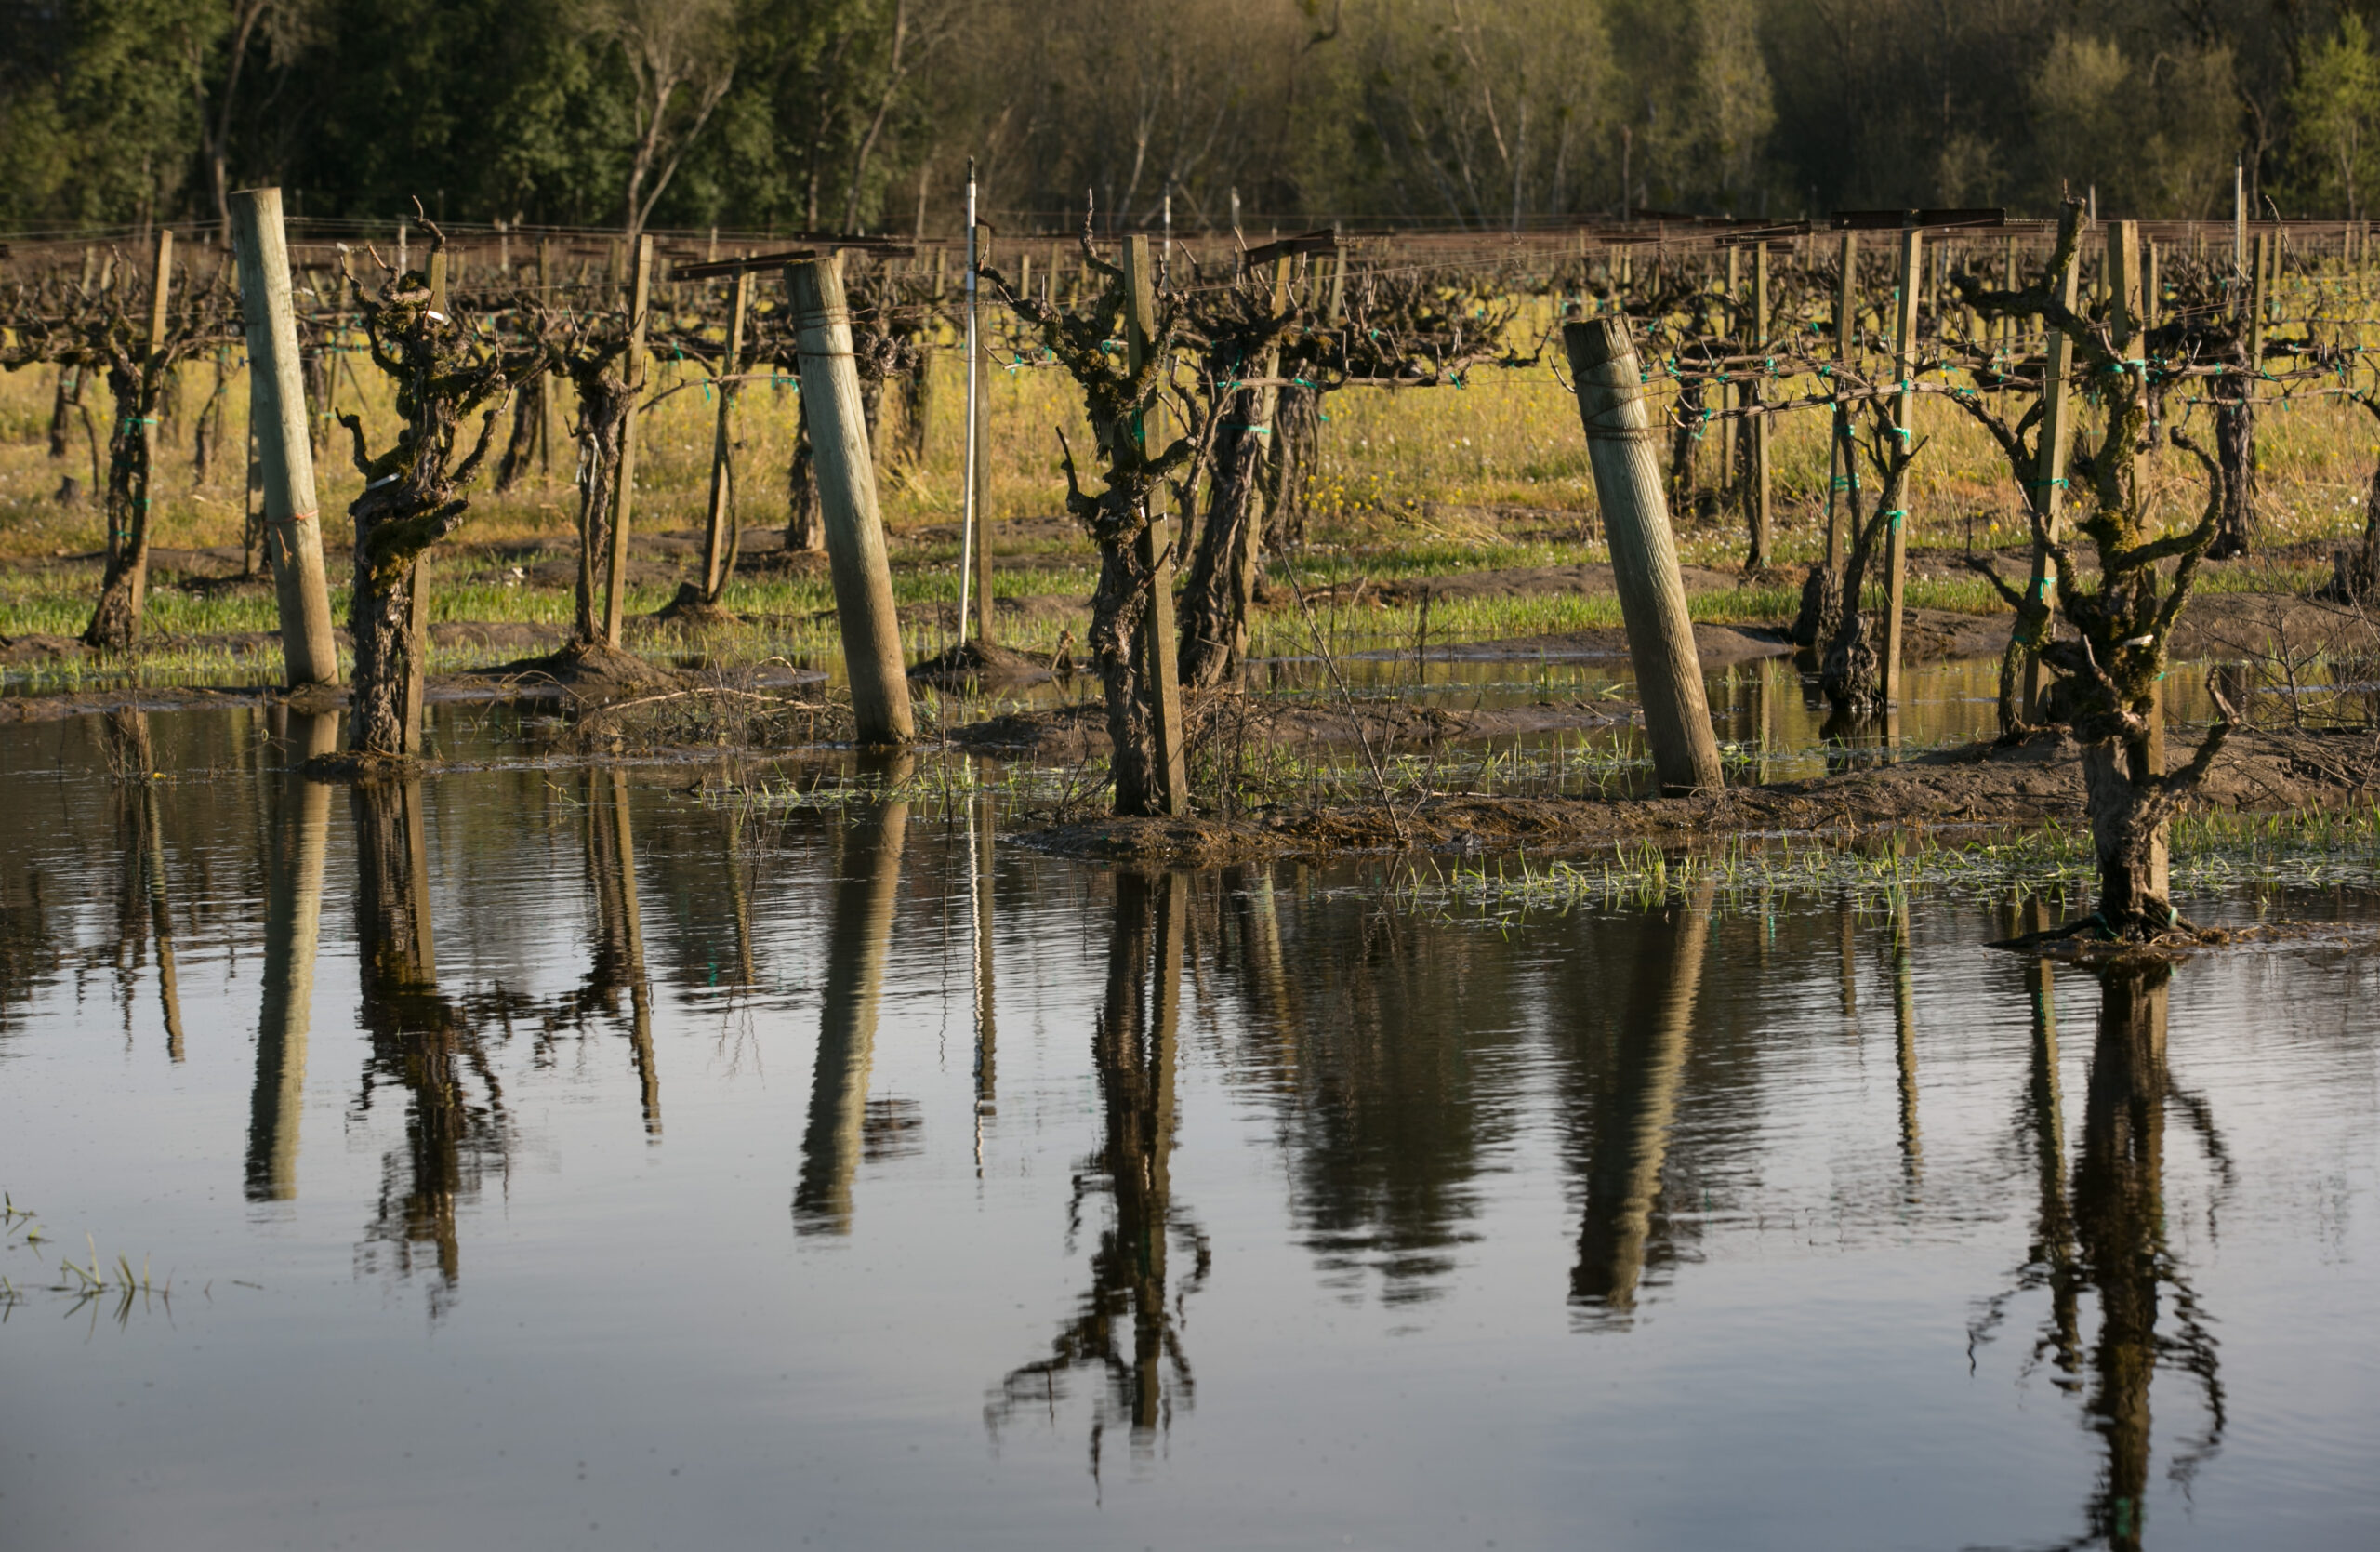 Chardonnay grapevines in the Russian River Valley flood on March 12, 2018, near Sebastopol, California. Credit: George Rose/Getty Images